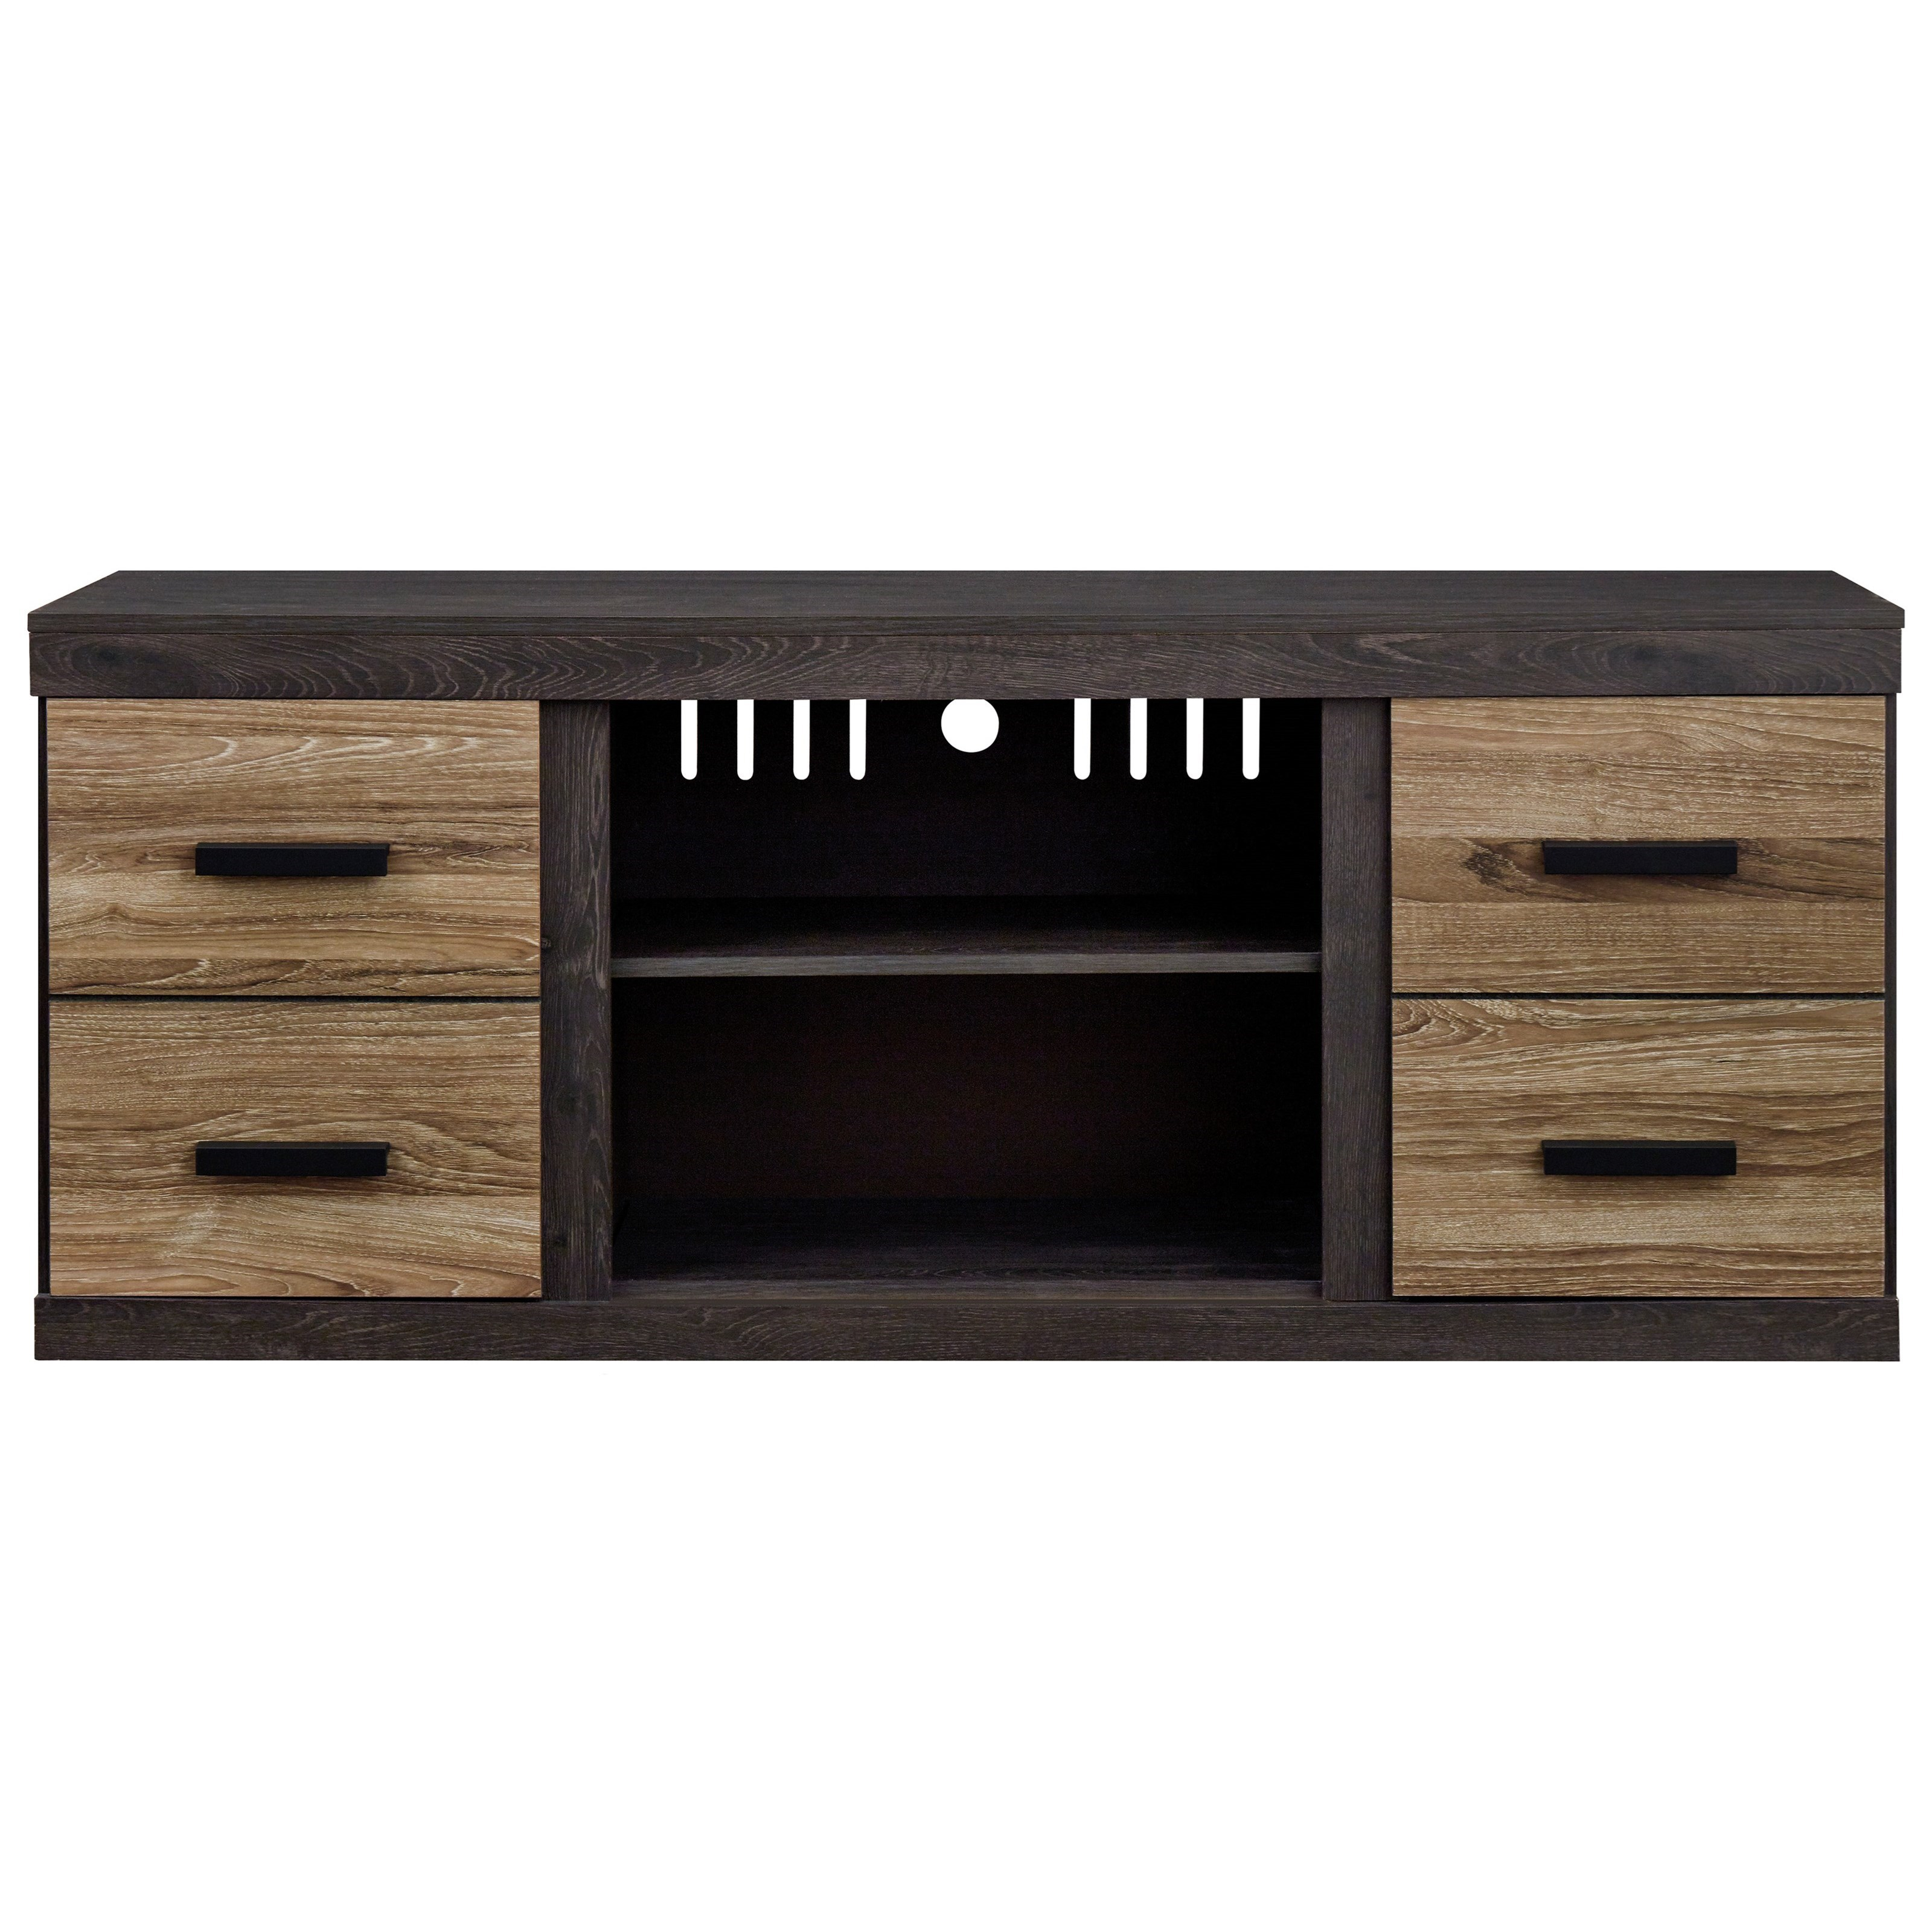 Harlinton Large TV Stand by Signature Design by Ashley at Northeast Factory Direct